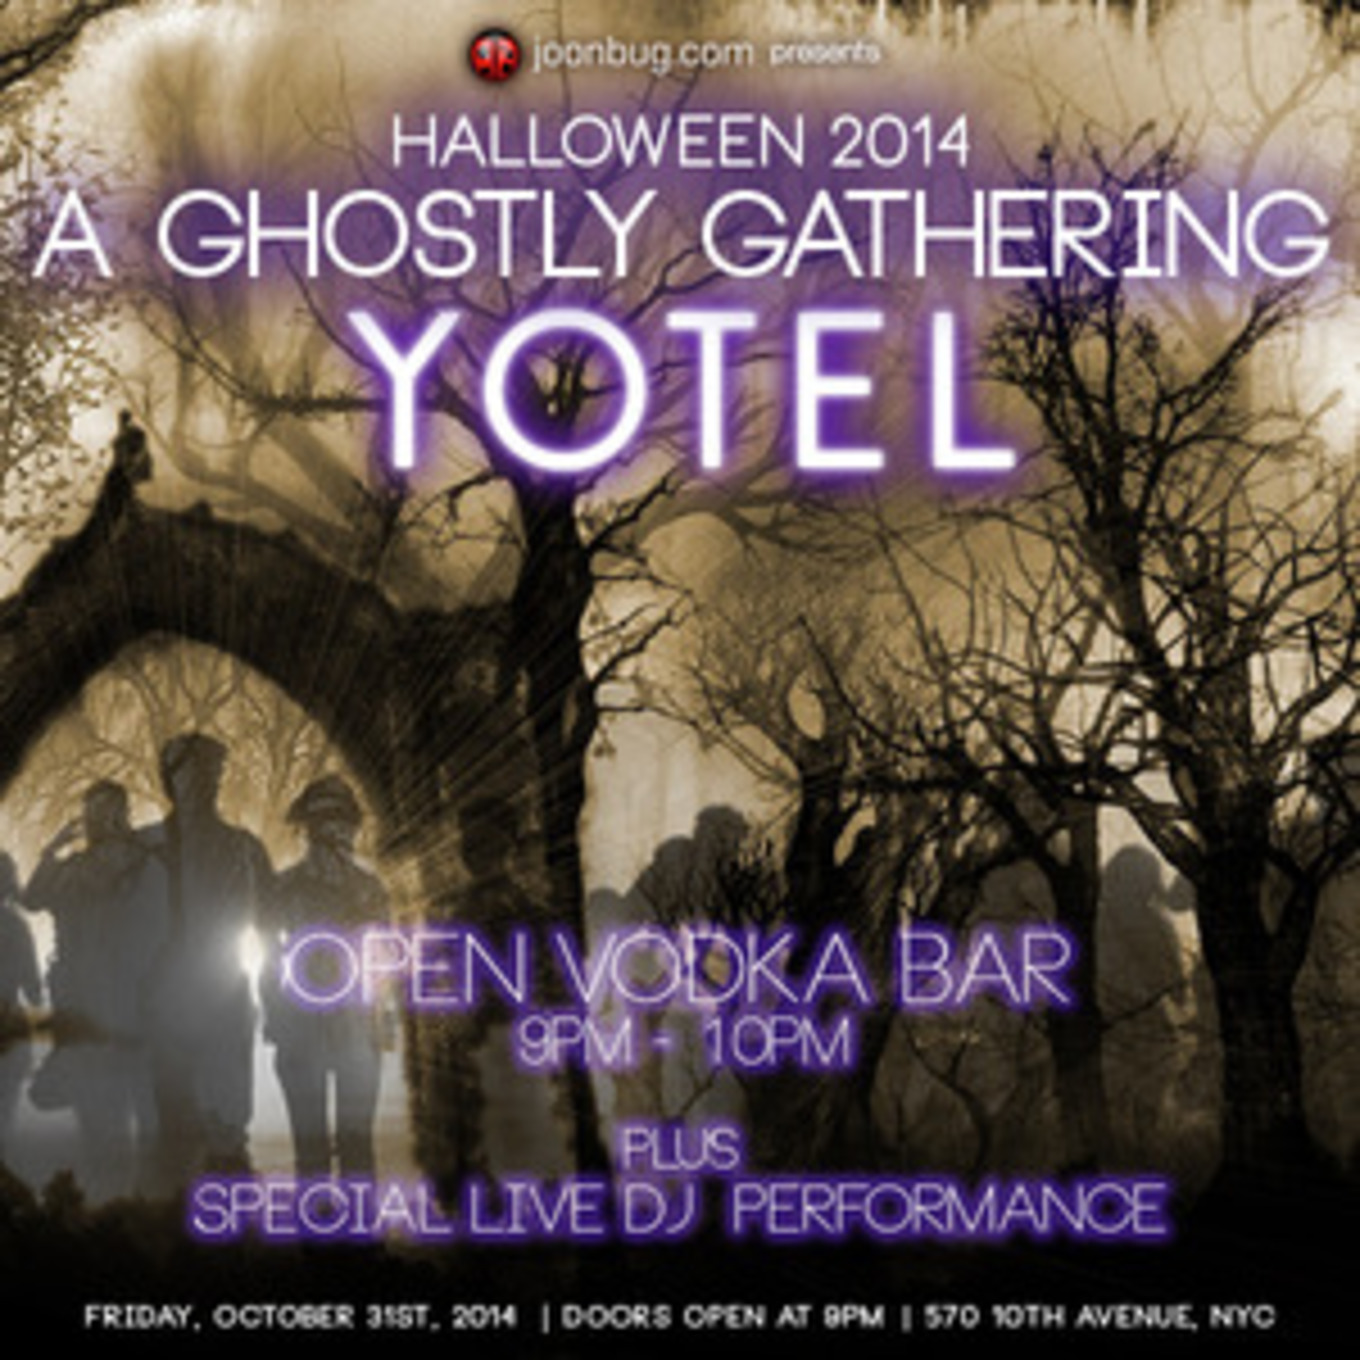 Halloween 2014 at Yotel - Yotel, New York, NY - October 31, 2014